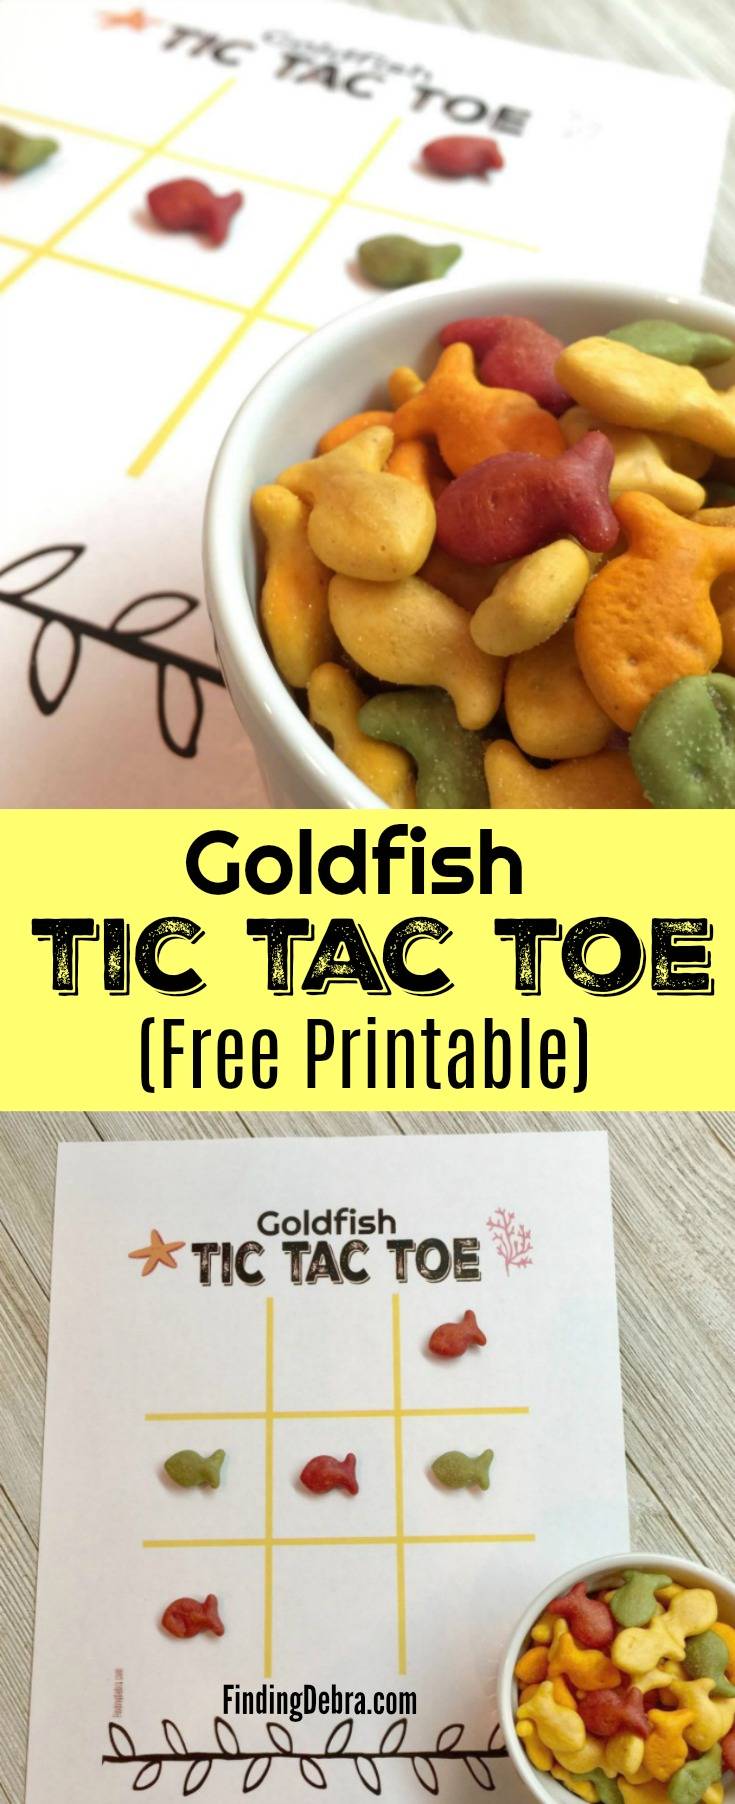 Goldfish Tic Tac Toe Free Printable for Kids Fun on the go, in the house, or while traveling! #ad #PlantYourVote